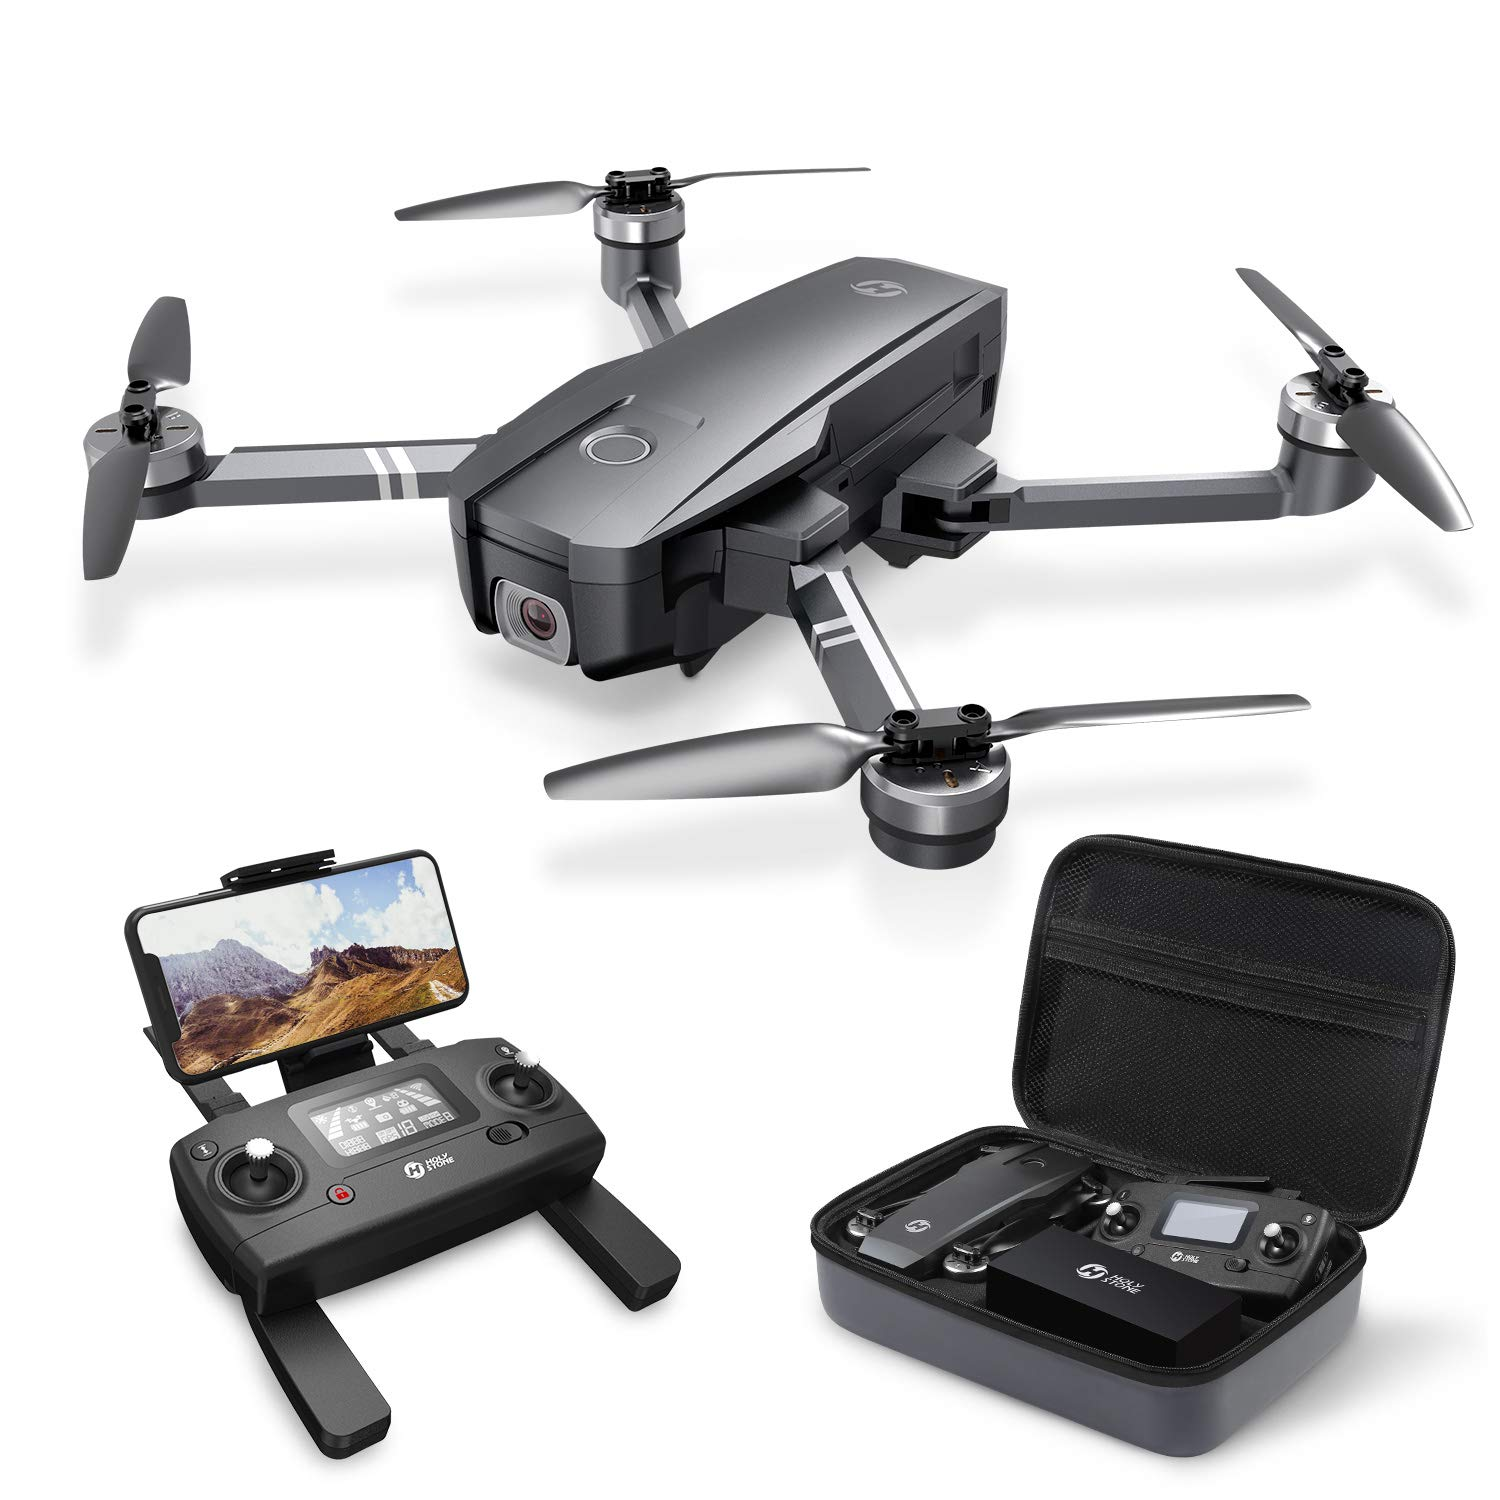 holy-stone-hs720-foldable-gps-drone-with-2k-fhd-camera-for-adults-quadcopter-with-brushless-motor-auto-return-home-follow-me-26-minutes-flight-time-long-control-range-includes-carrying